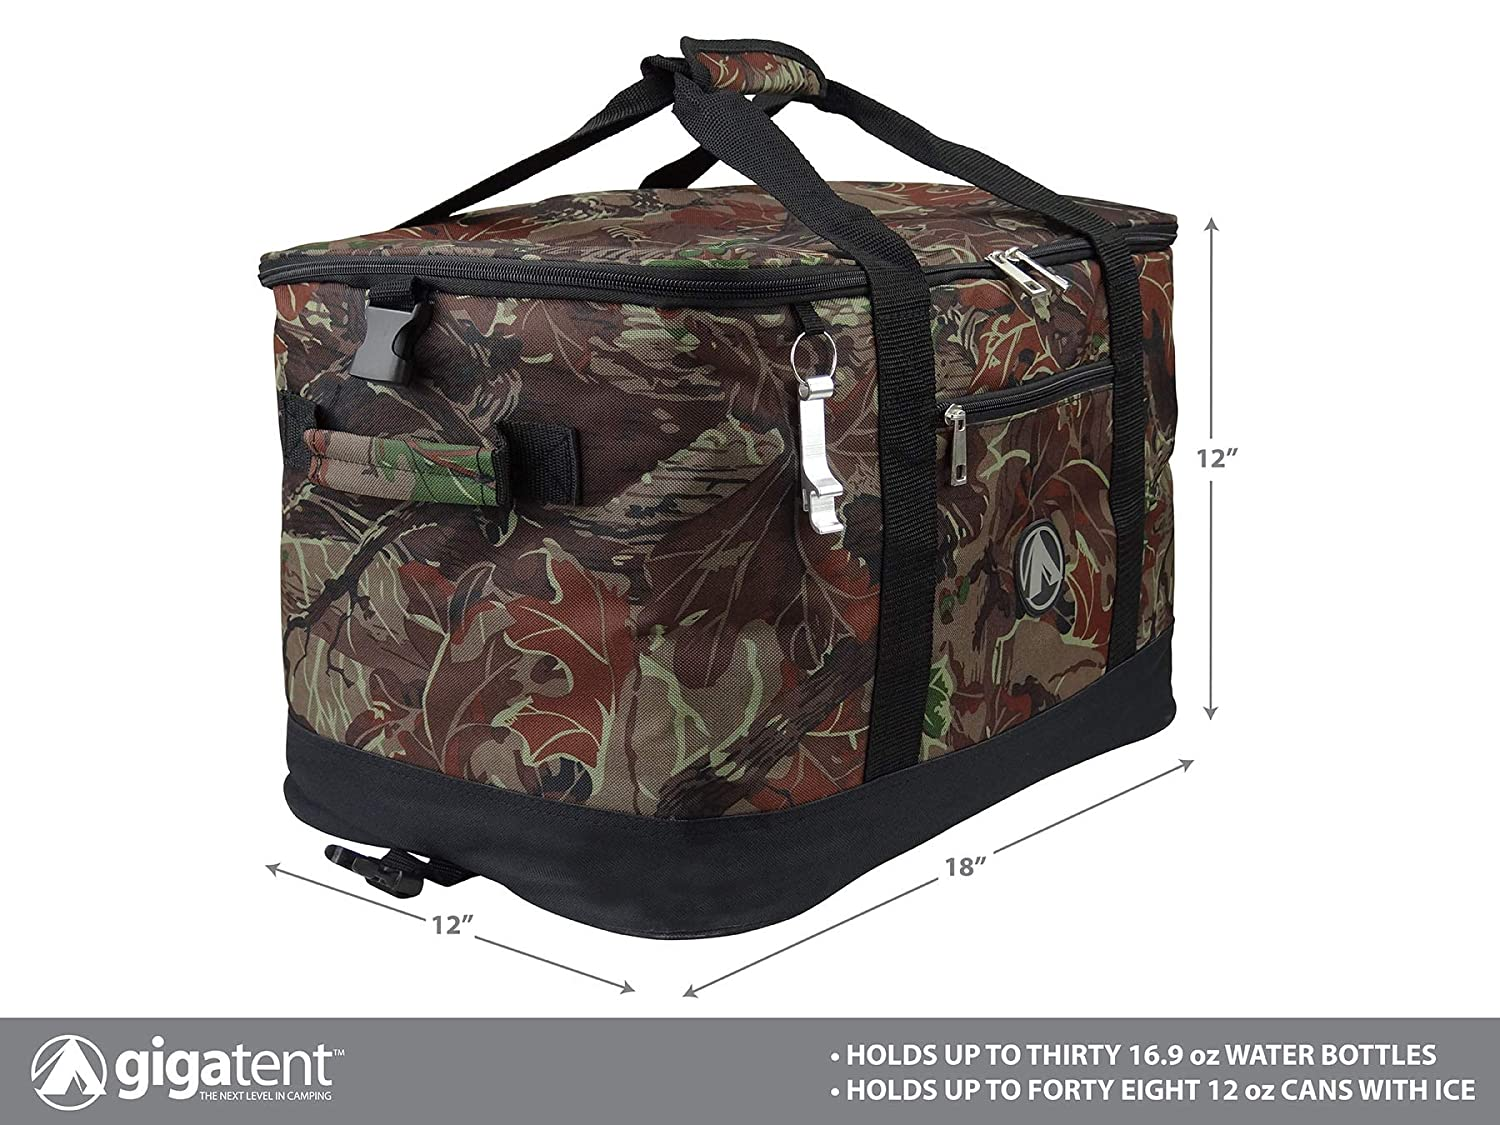 GigaTent Insulated Collapsible Cooler Soft Lunch Box with Bottle Opener for Camping, Beach and Travel Lightweight and Tear Resistant Fabric Large – 18 W, 12 H, 12 D, Camo